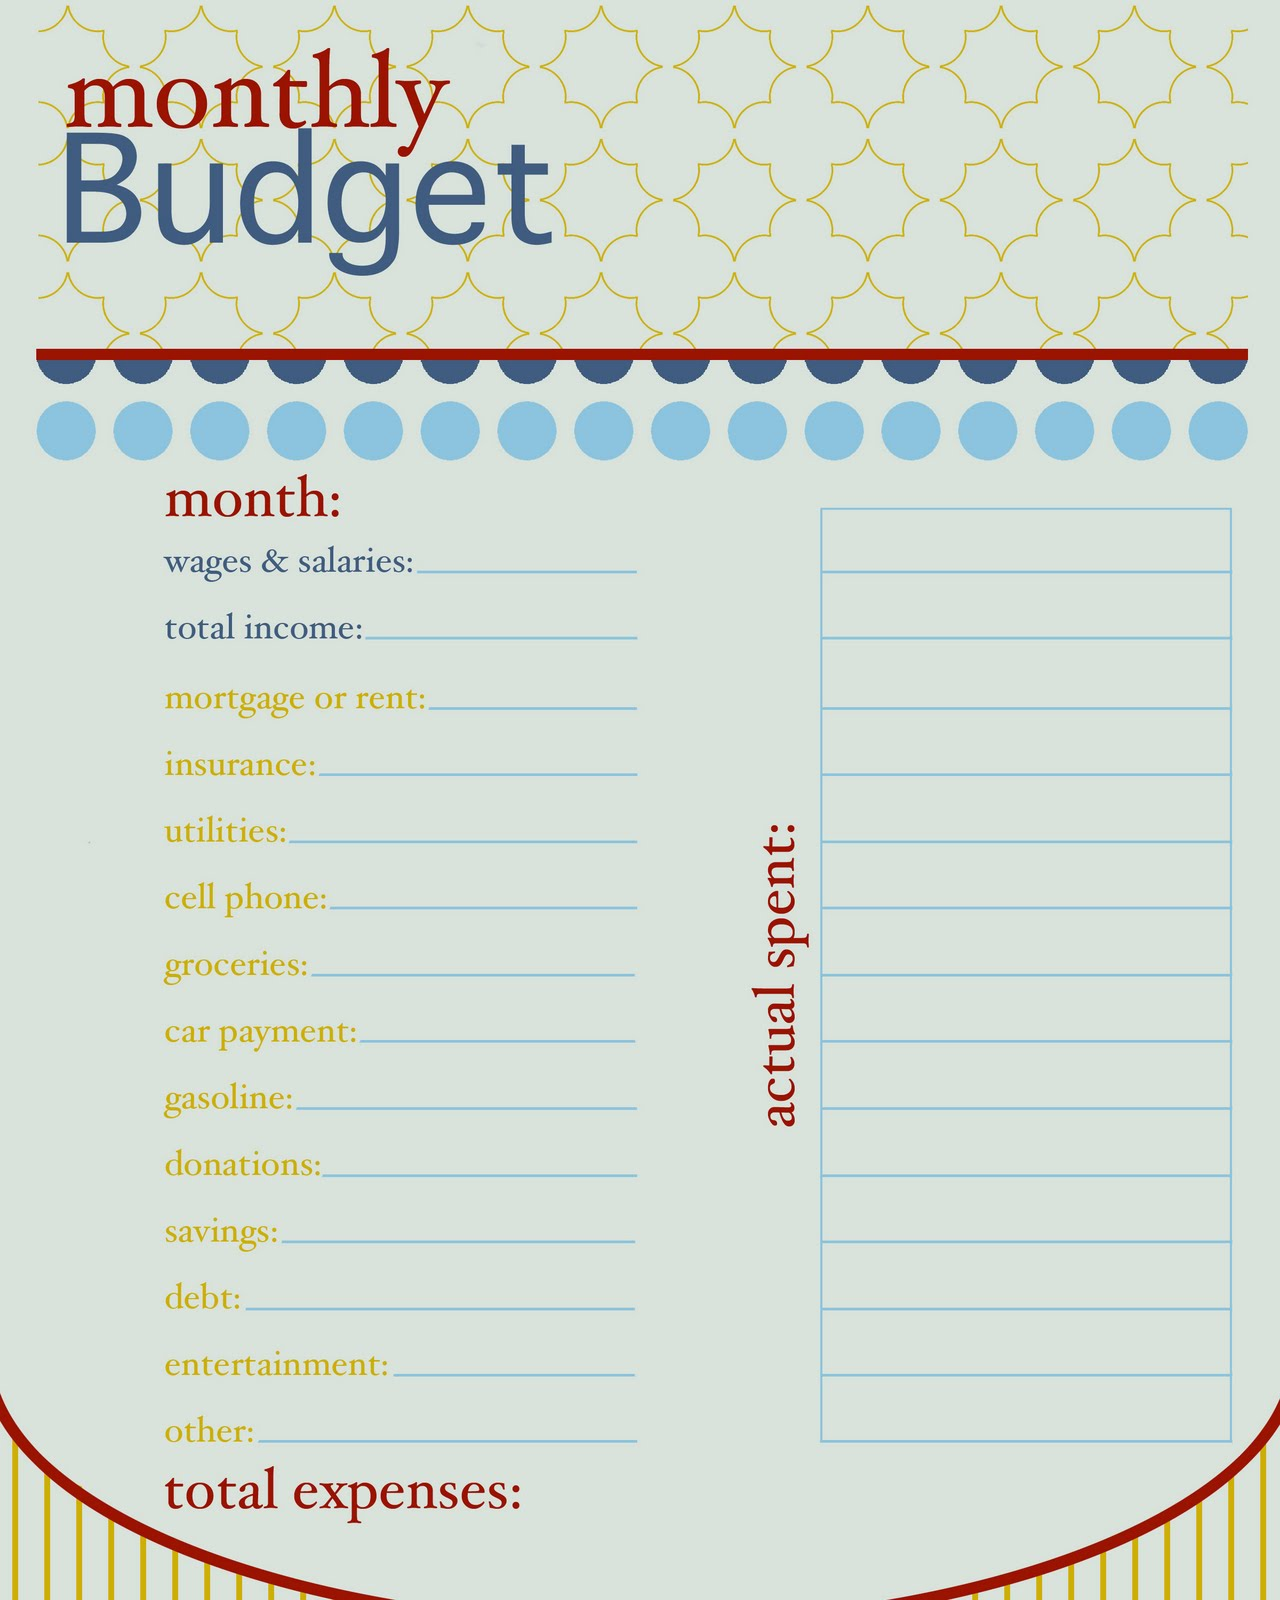 Worksheets Free Printable Monthly Budget Worksheets budget sheet free kays makehauk co free